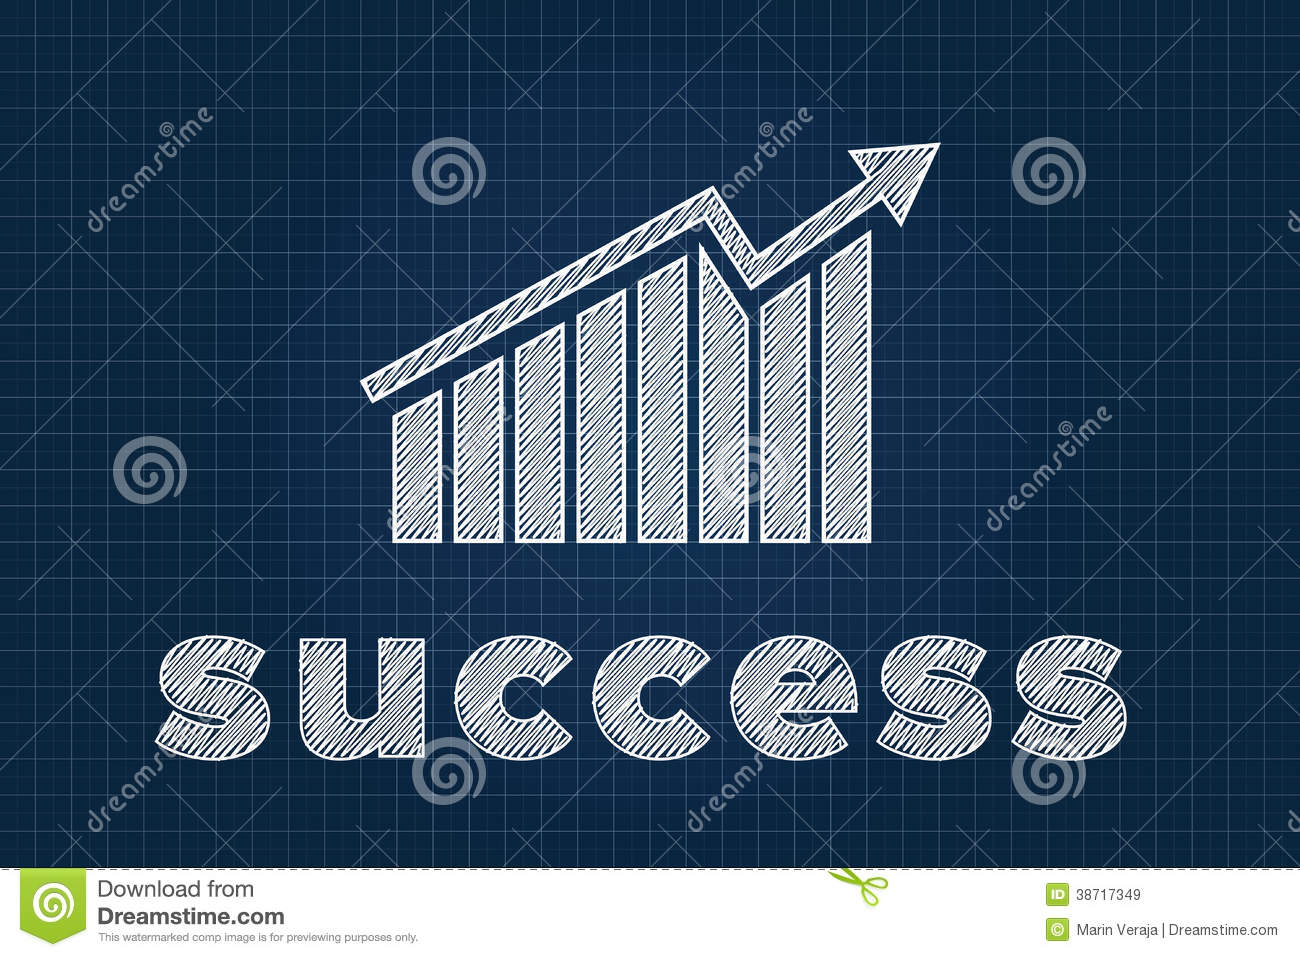 Success concept with graph on blueprint stock vector success concept with graph on blueprint malvernweather Gallery